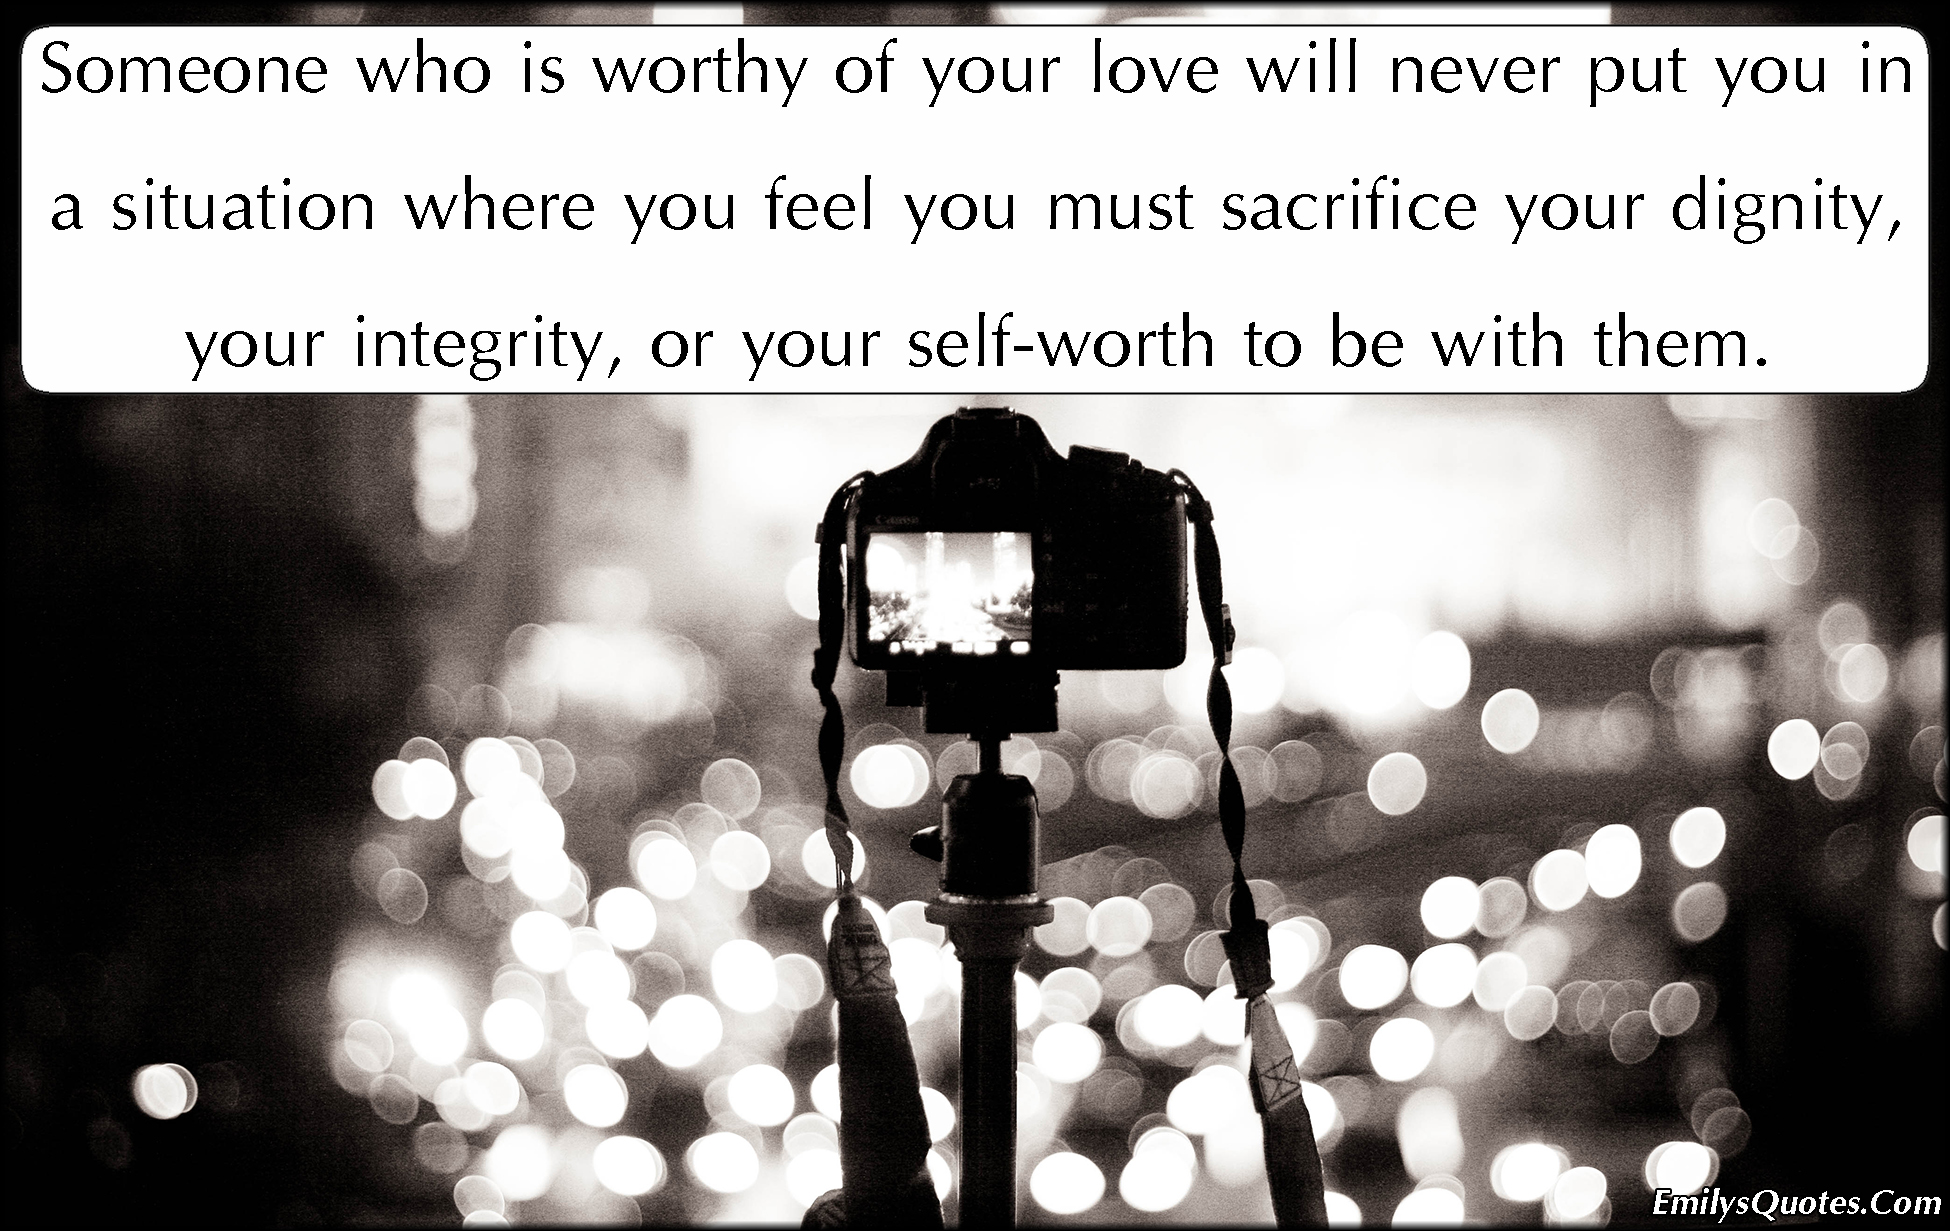 EmilysQuotes.Com - worthy, love, feelings, sacrifice, dignity, integrity, self-worth, relationship, understanding, being together, unknown